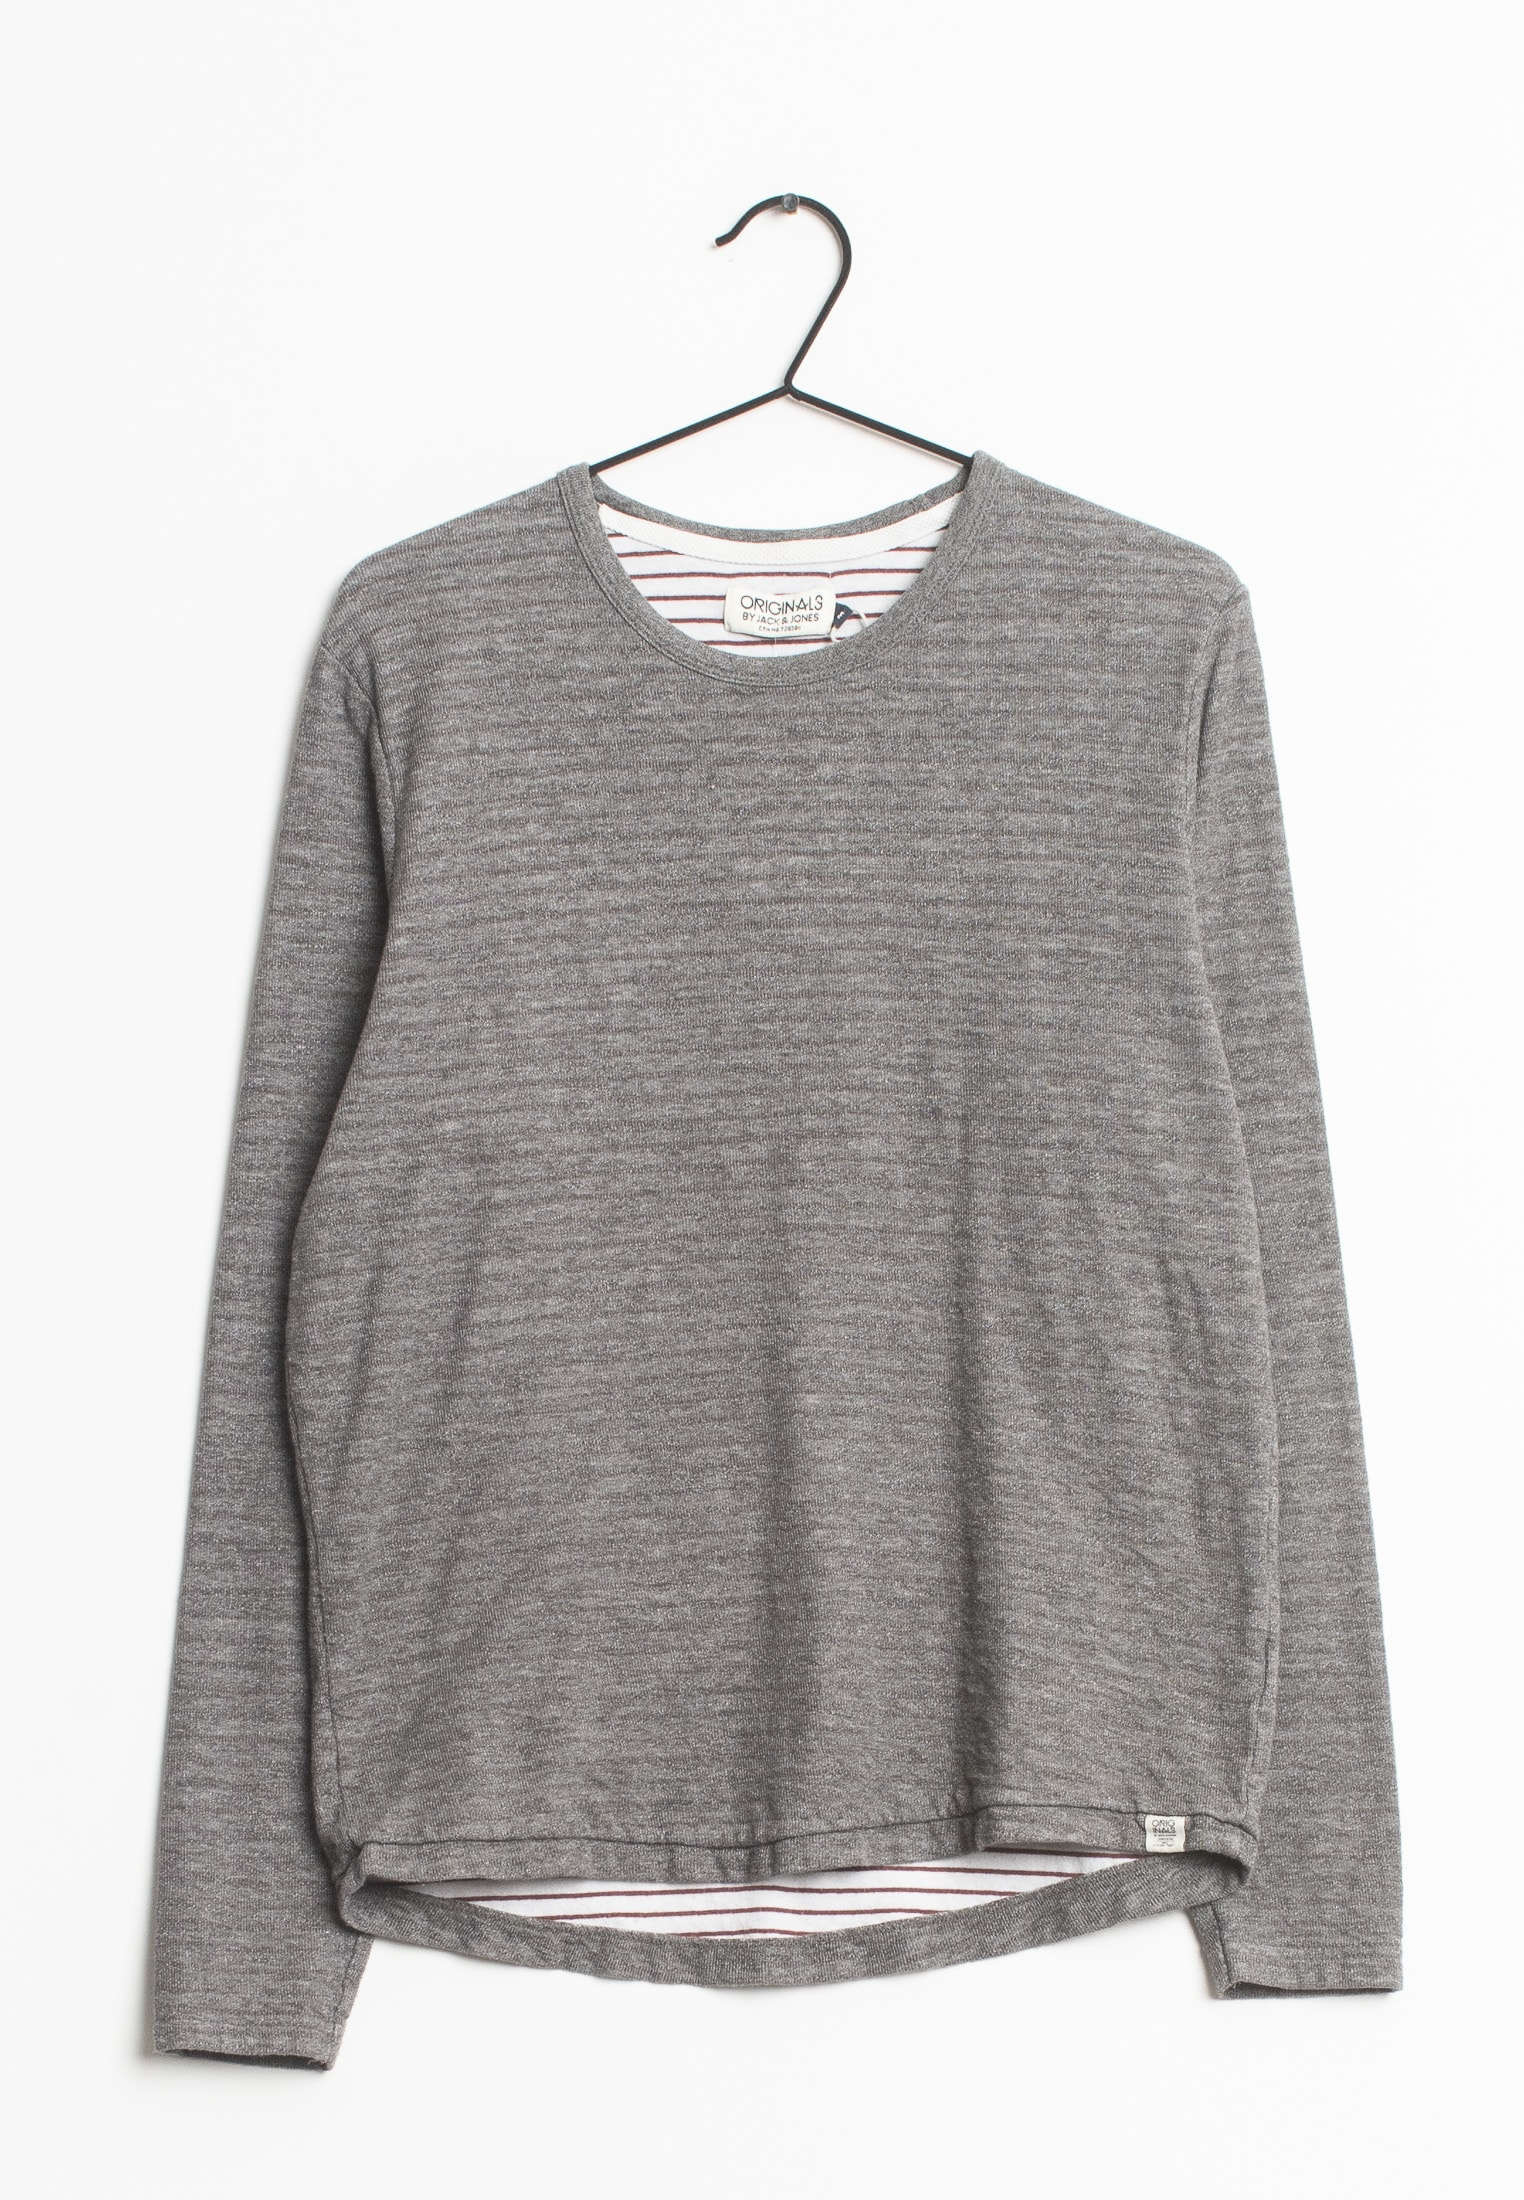 Jack & Jones Strickpullover Grau Gr.M